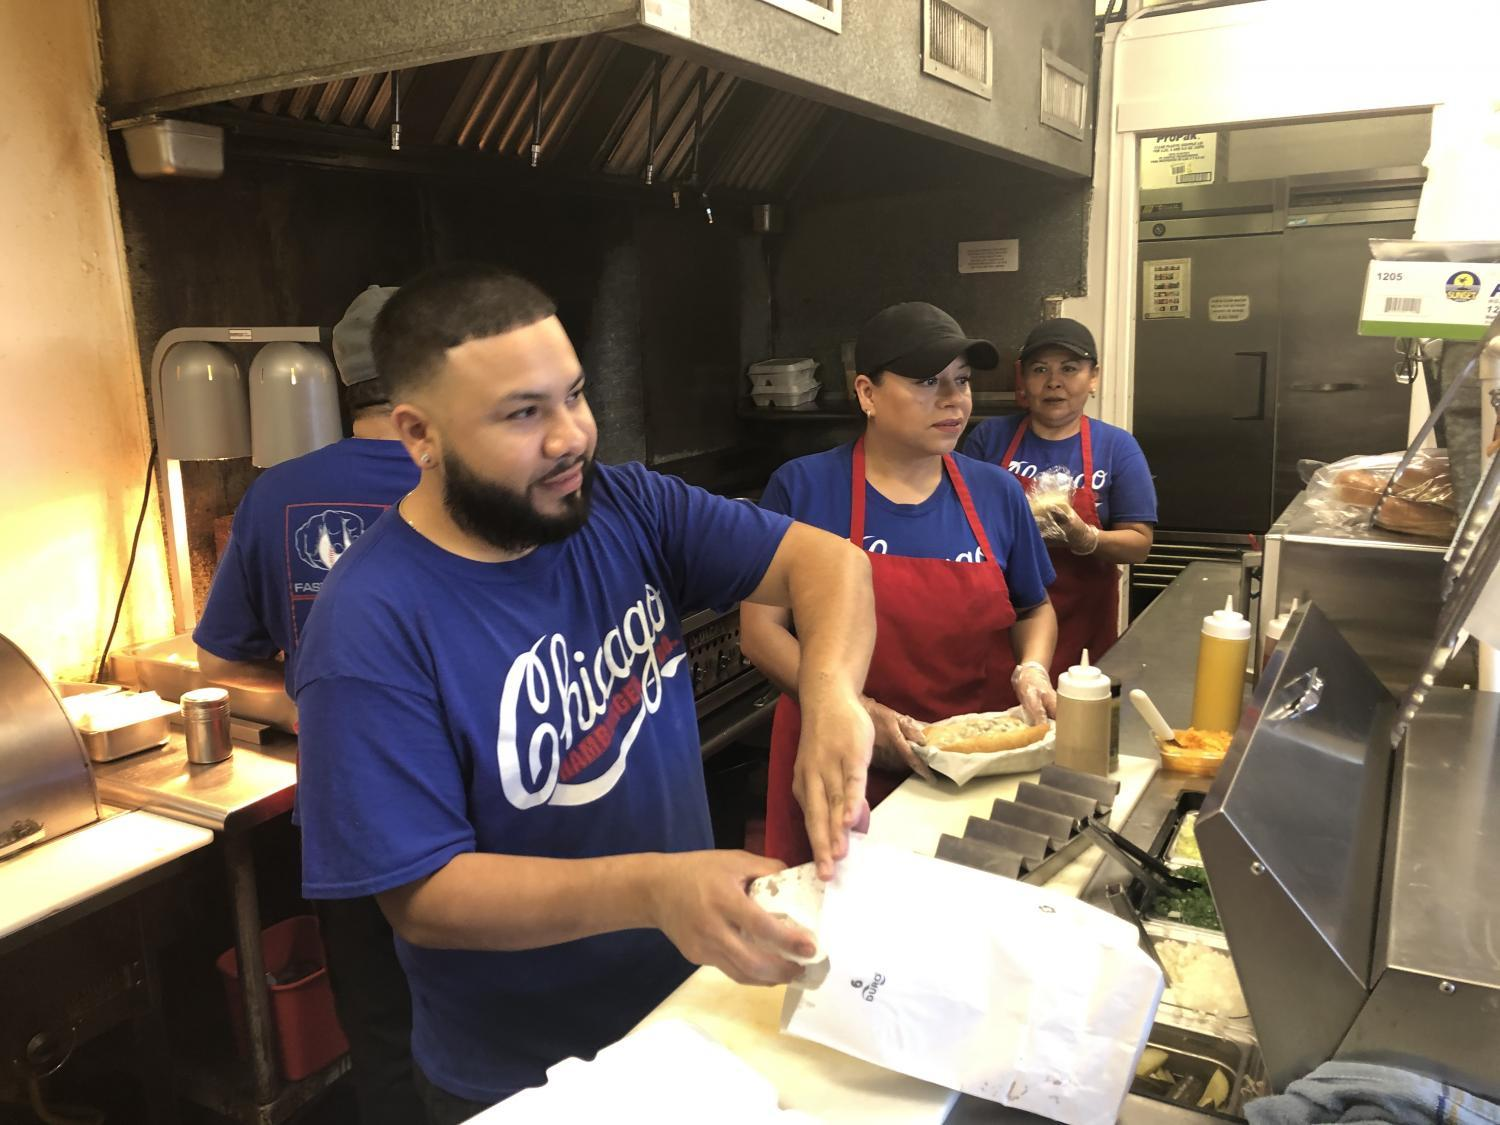 restaurant employees filling orders at counter